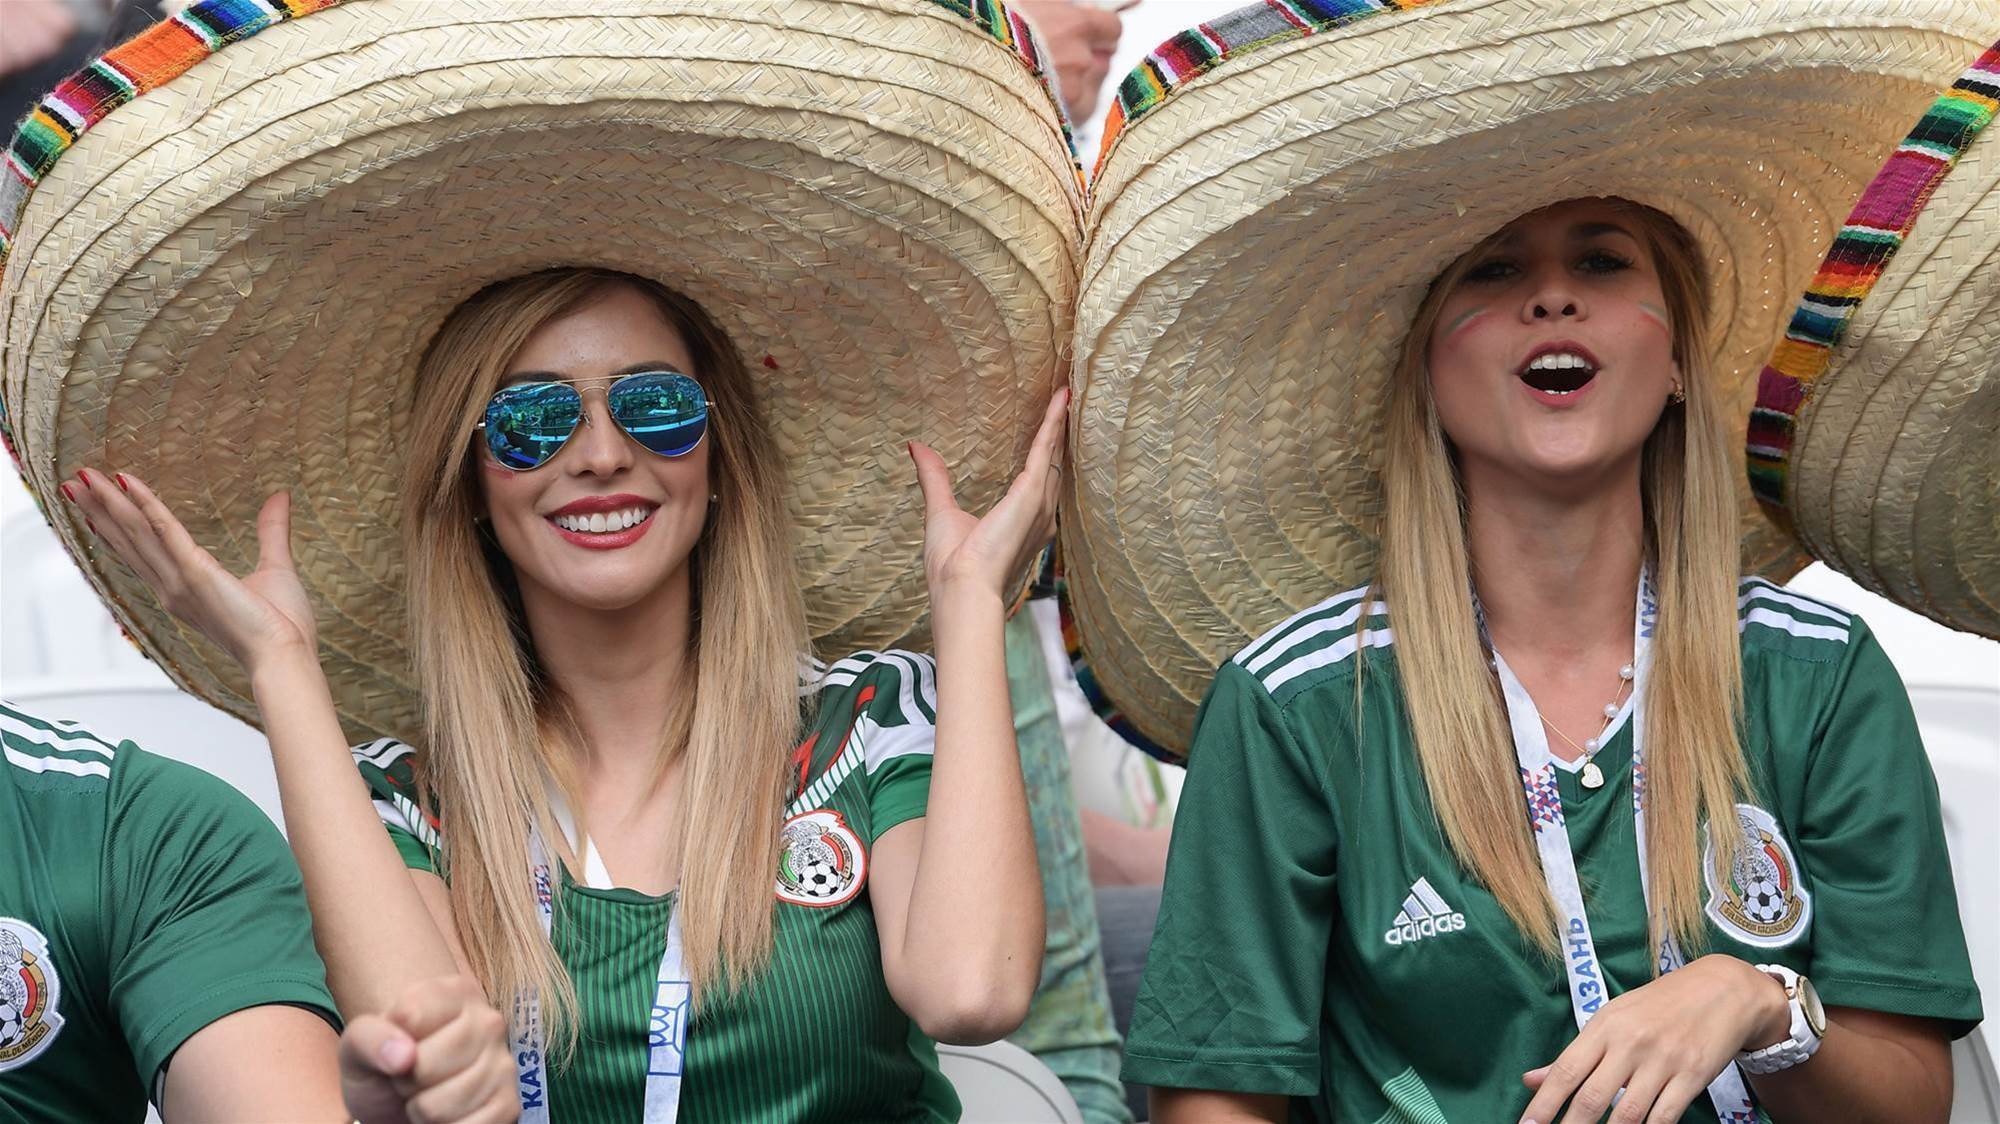 Confederations Cup: Fans pic special